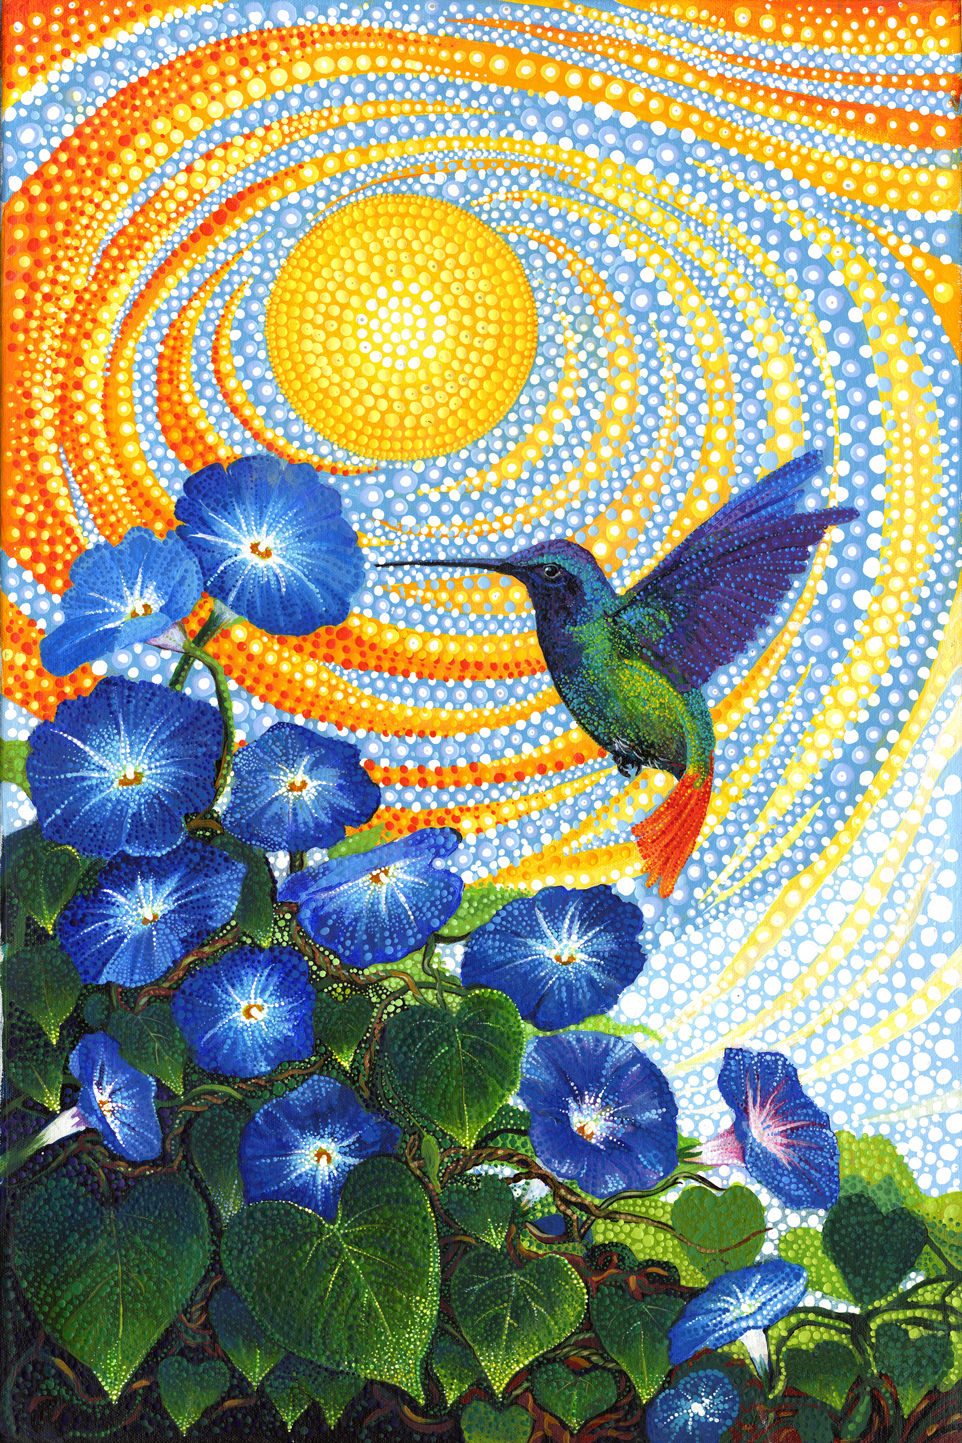 Dreamscapes - Morning Glory Hummingbird Panel